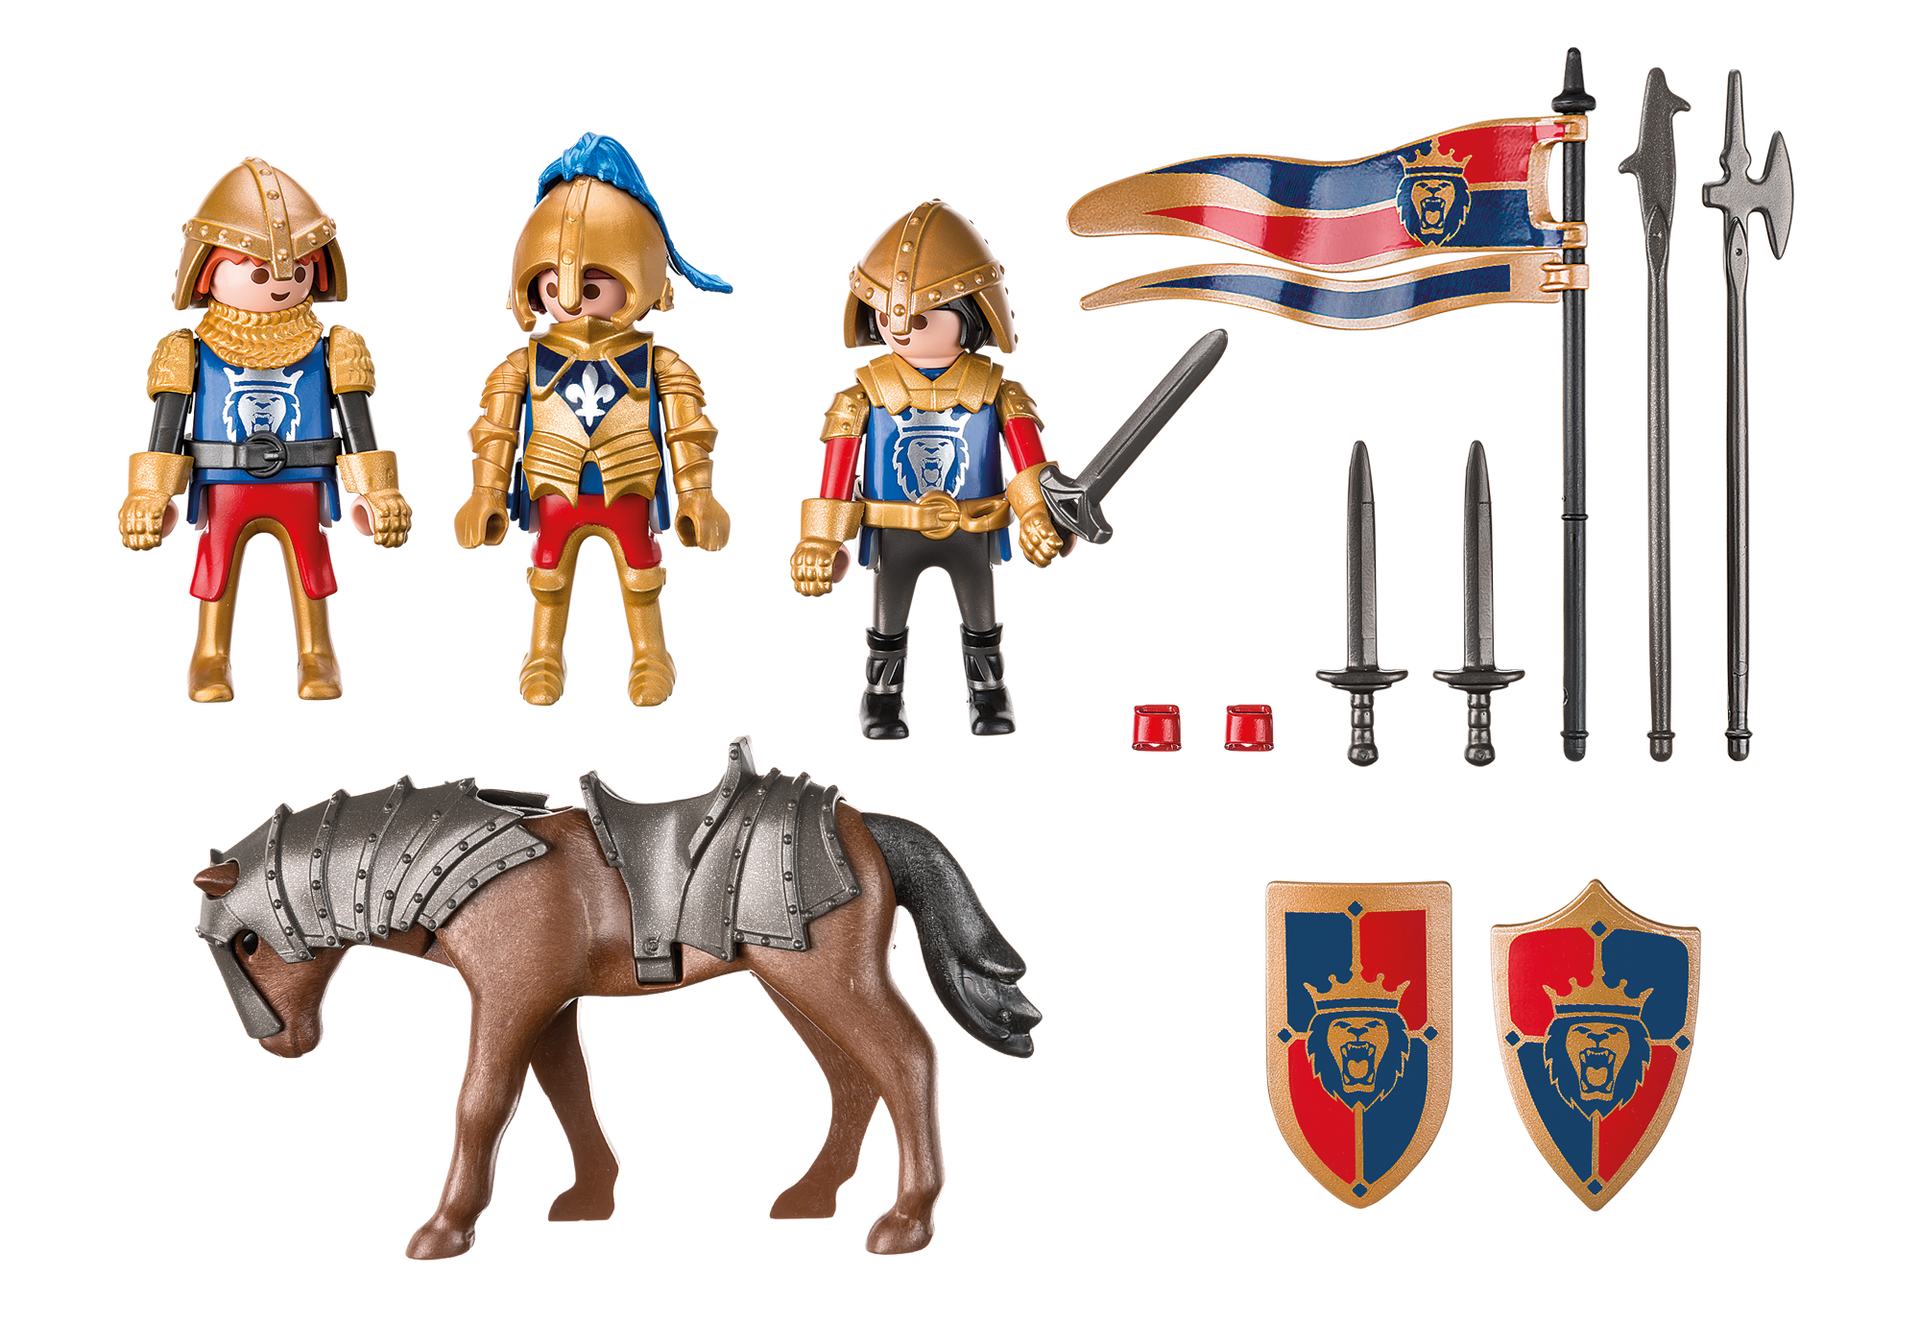 Knight clipart royal horse. Lion knights playmobil united